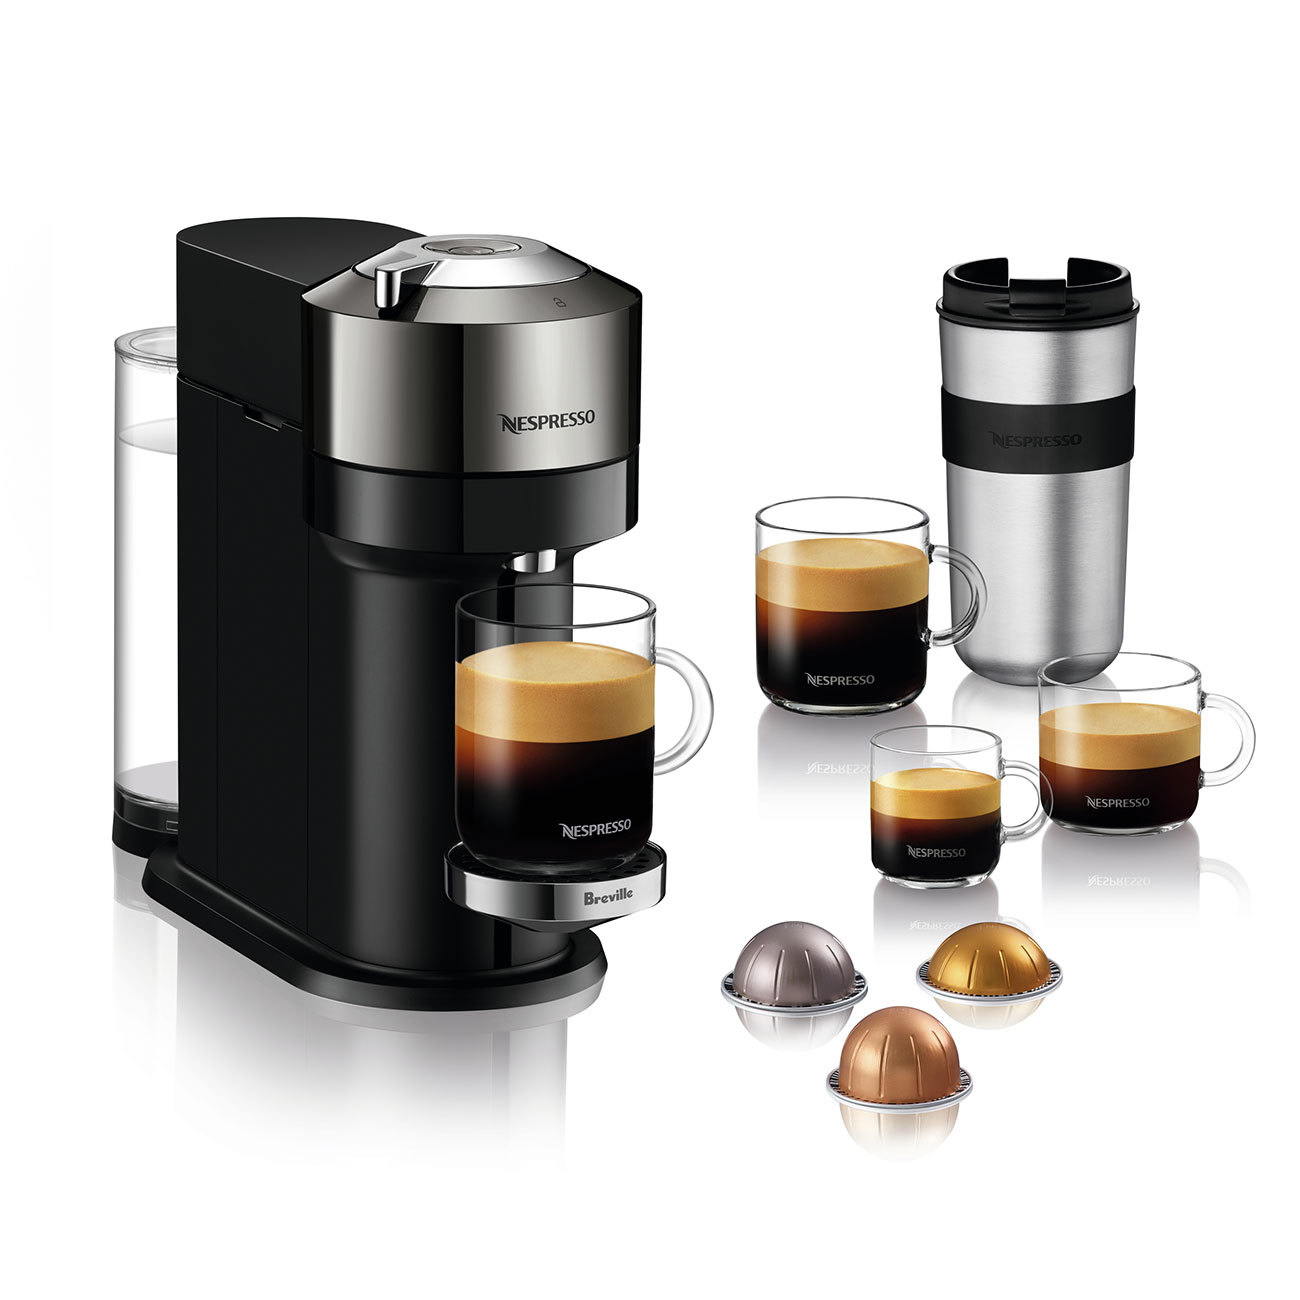 Machine with Black coffee and capsules